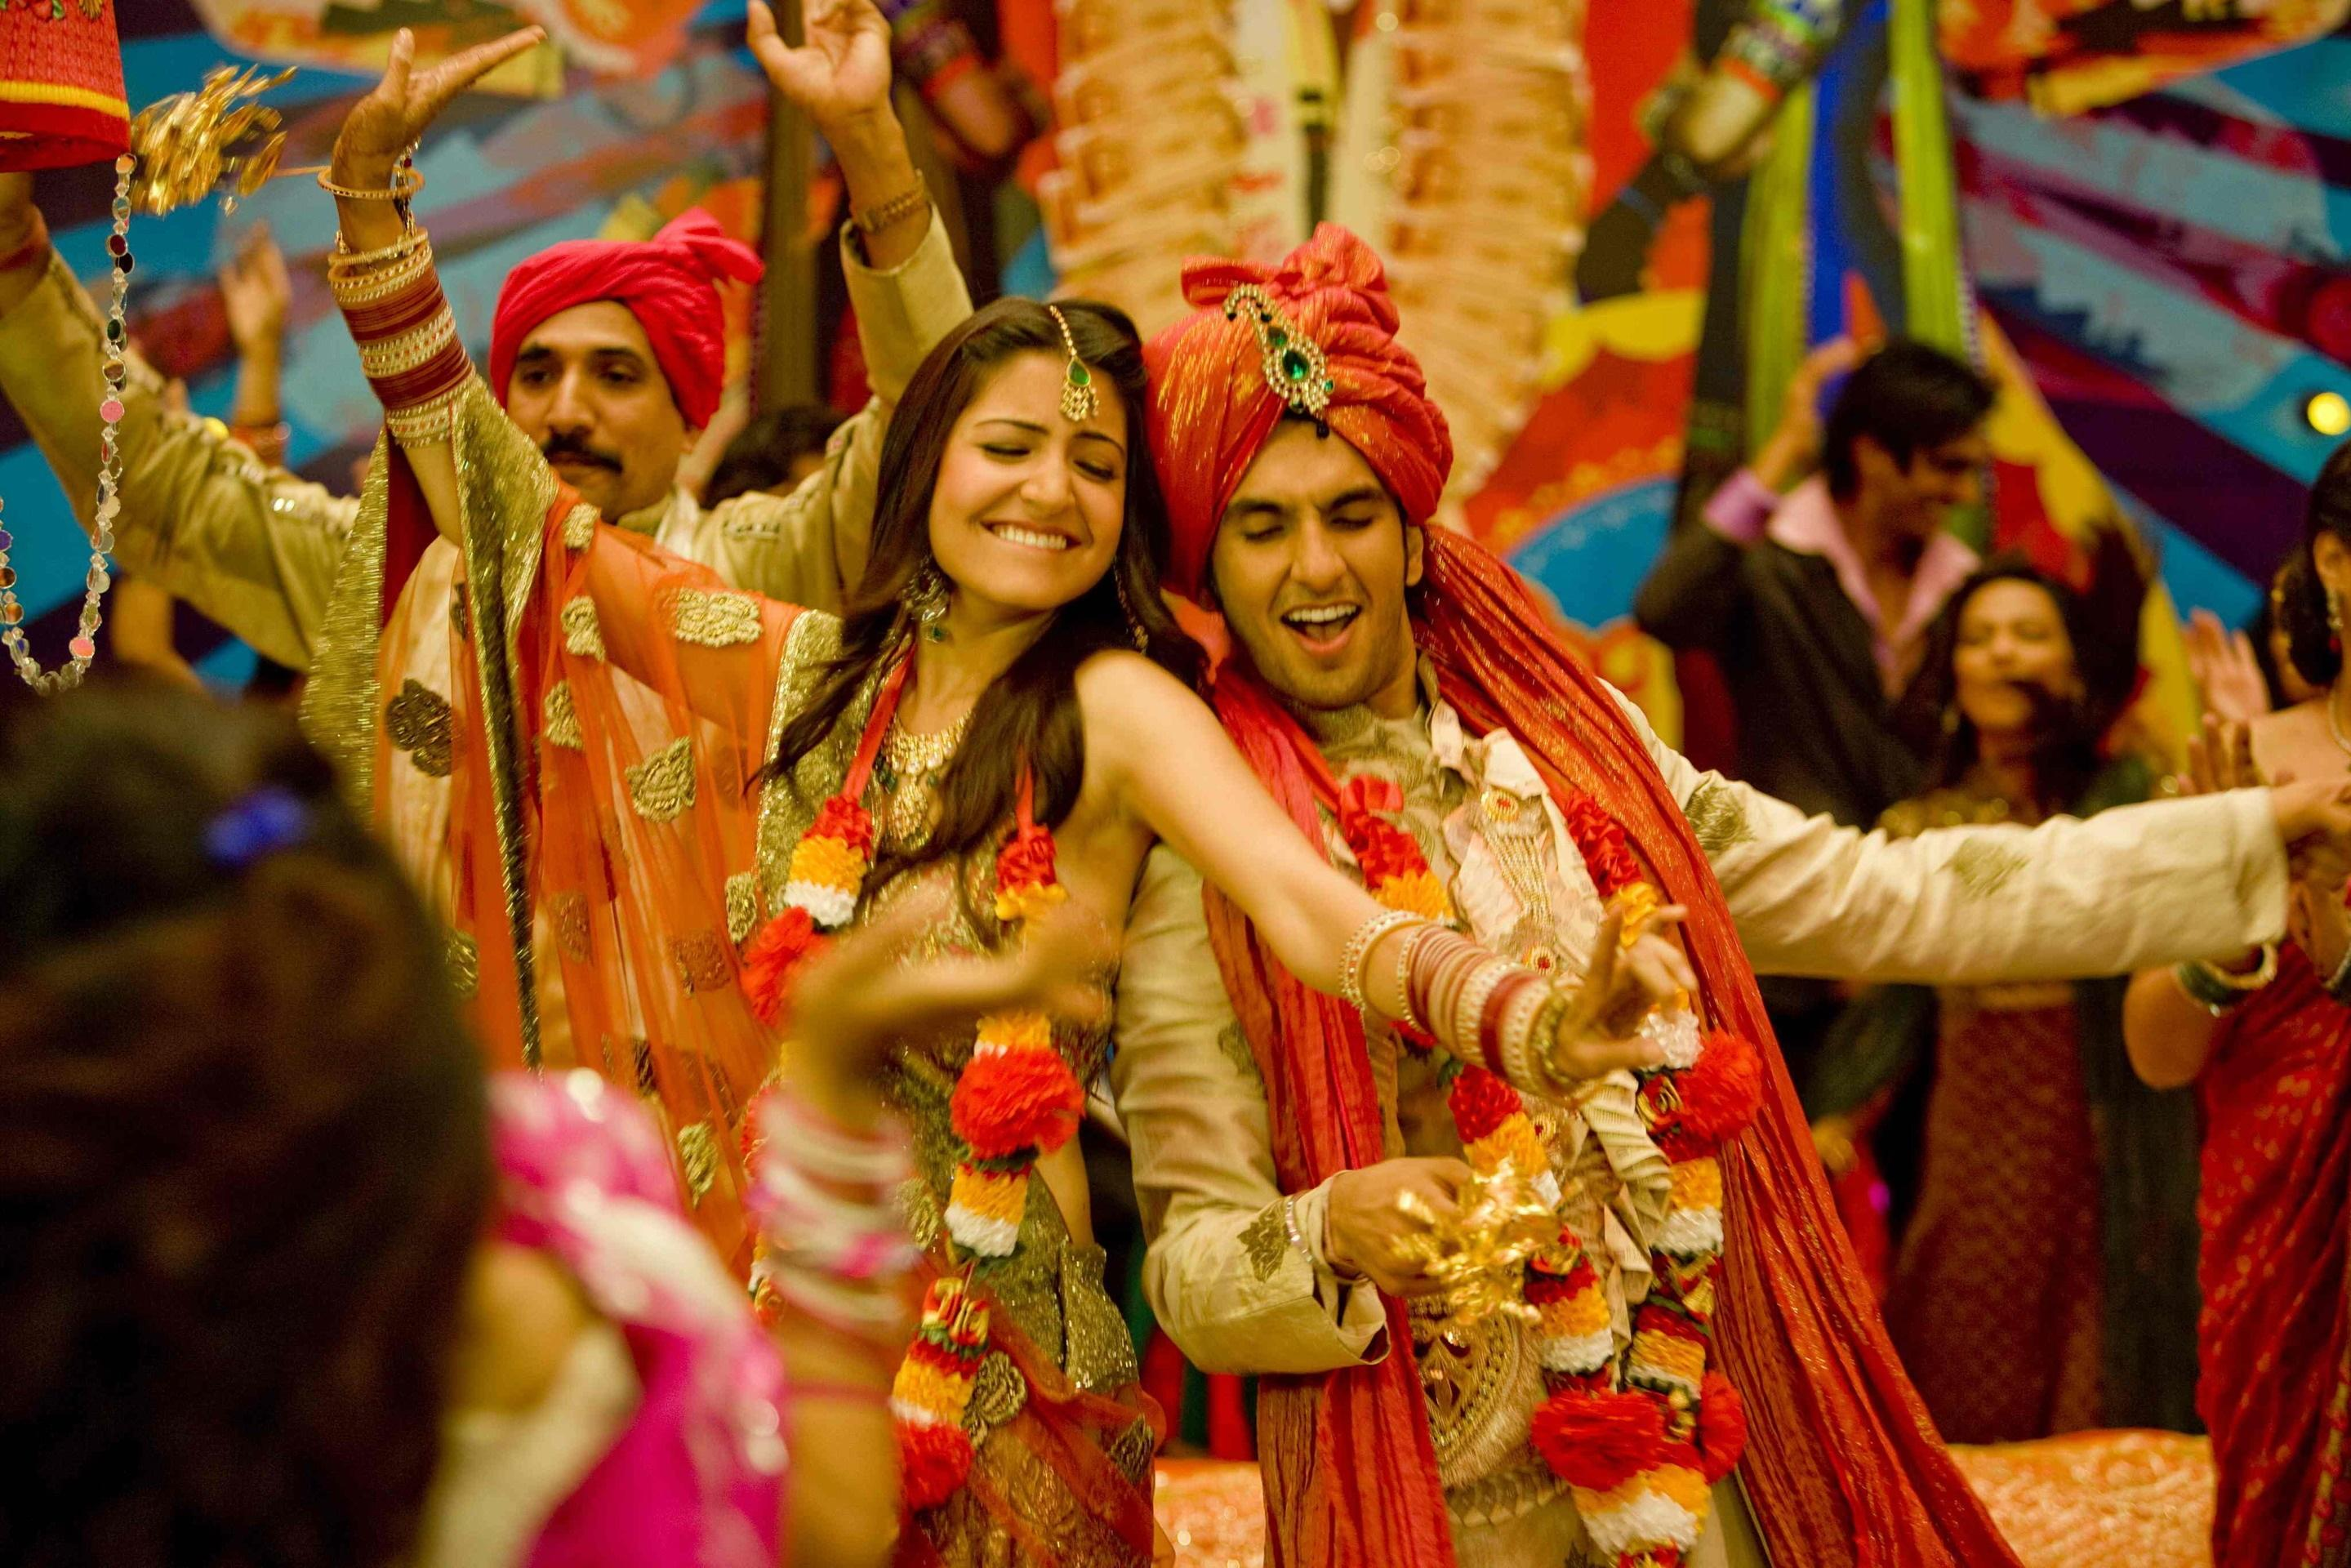 Bollywood movie about wedding